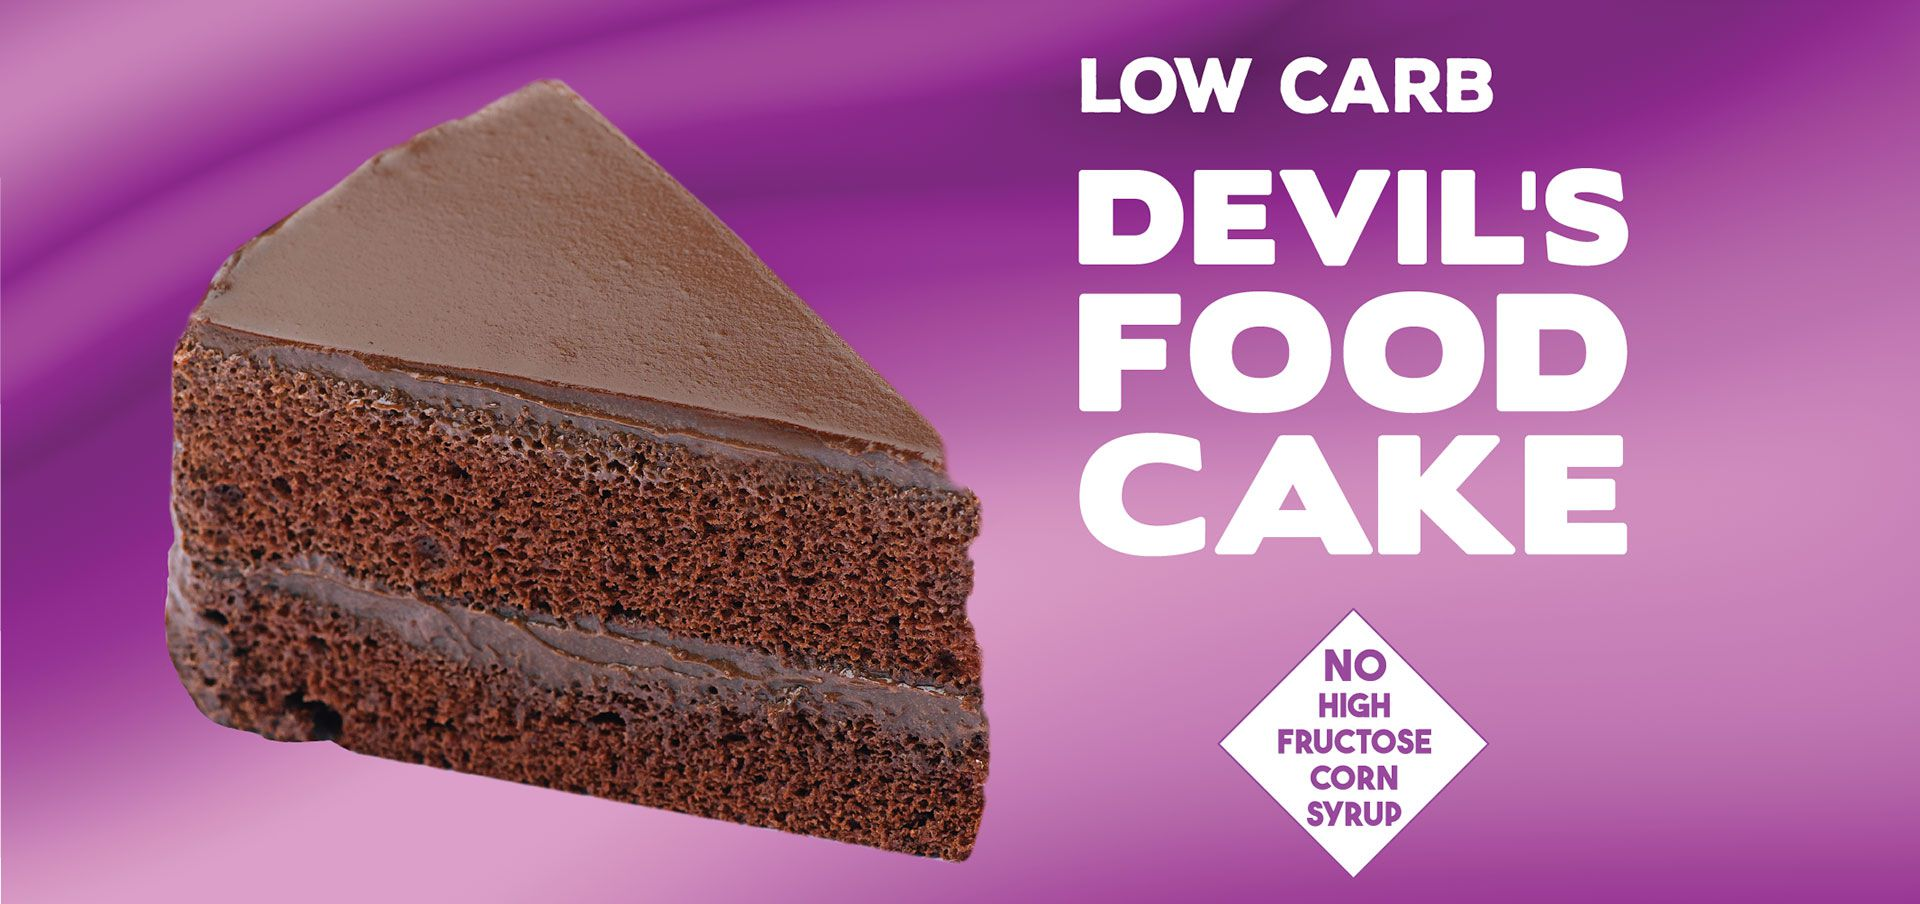 devil's food cake label image